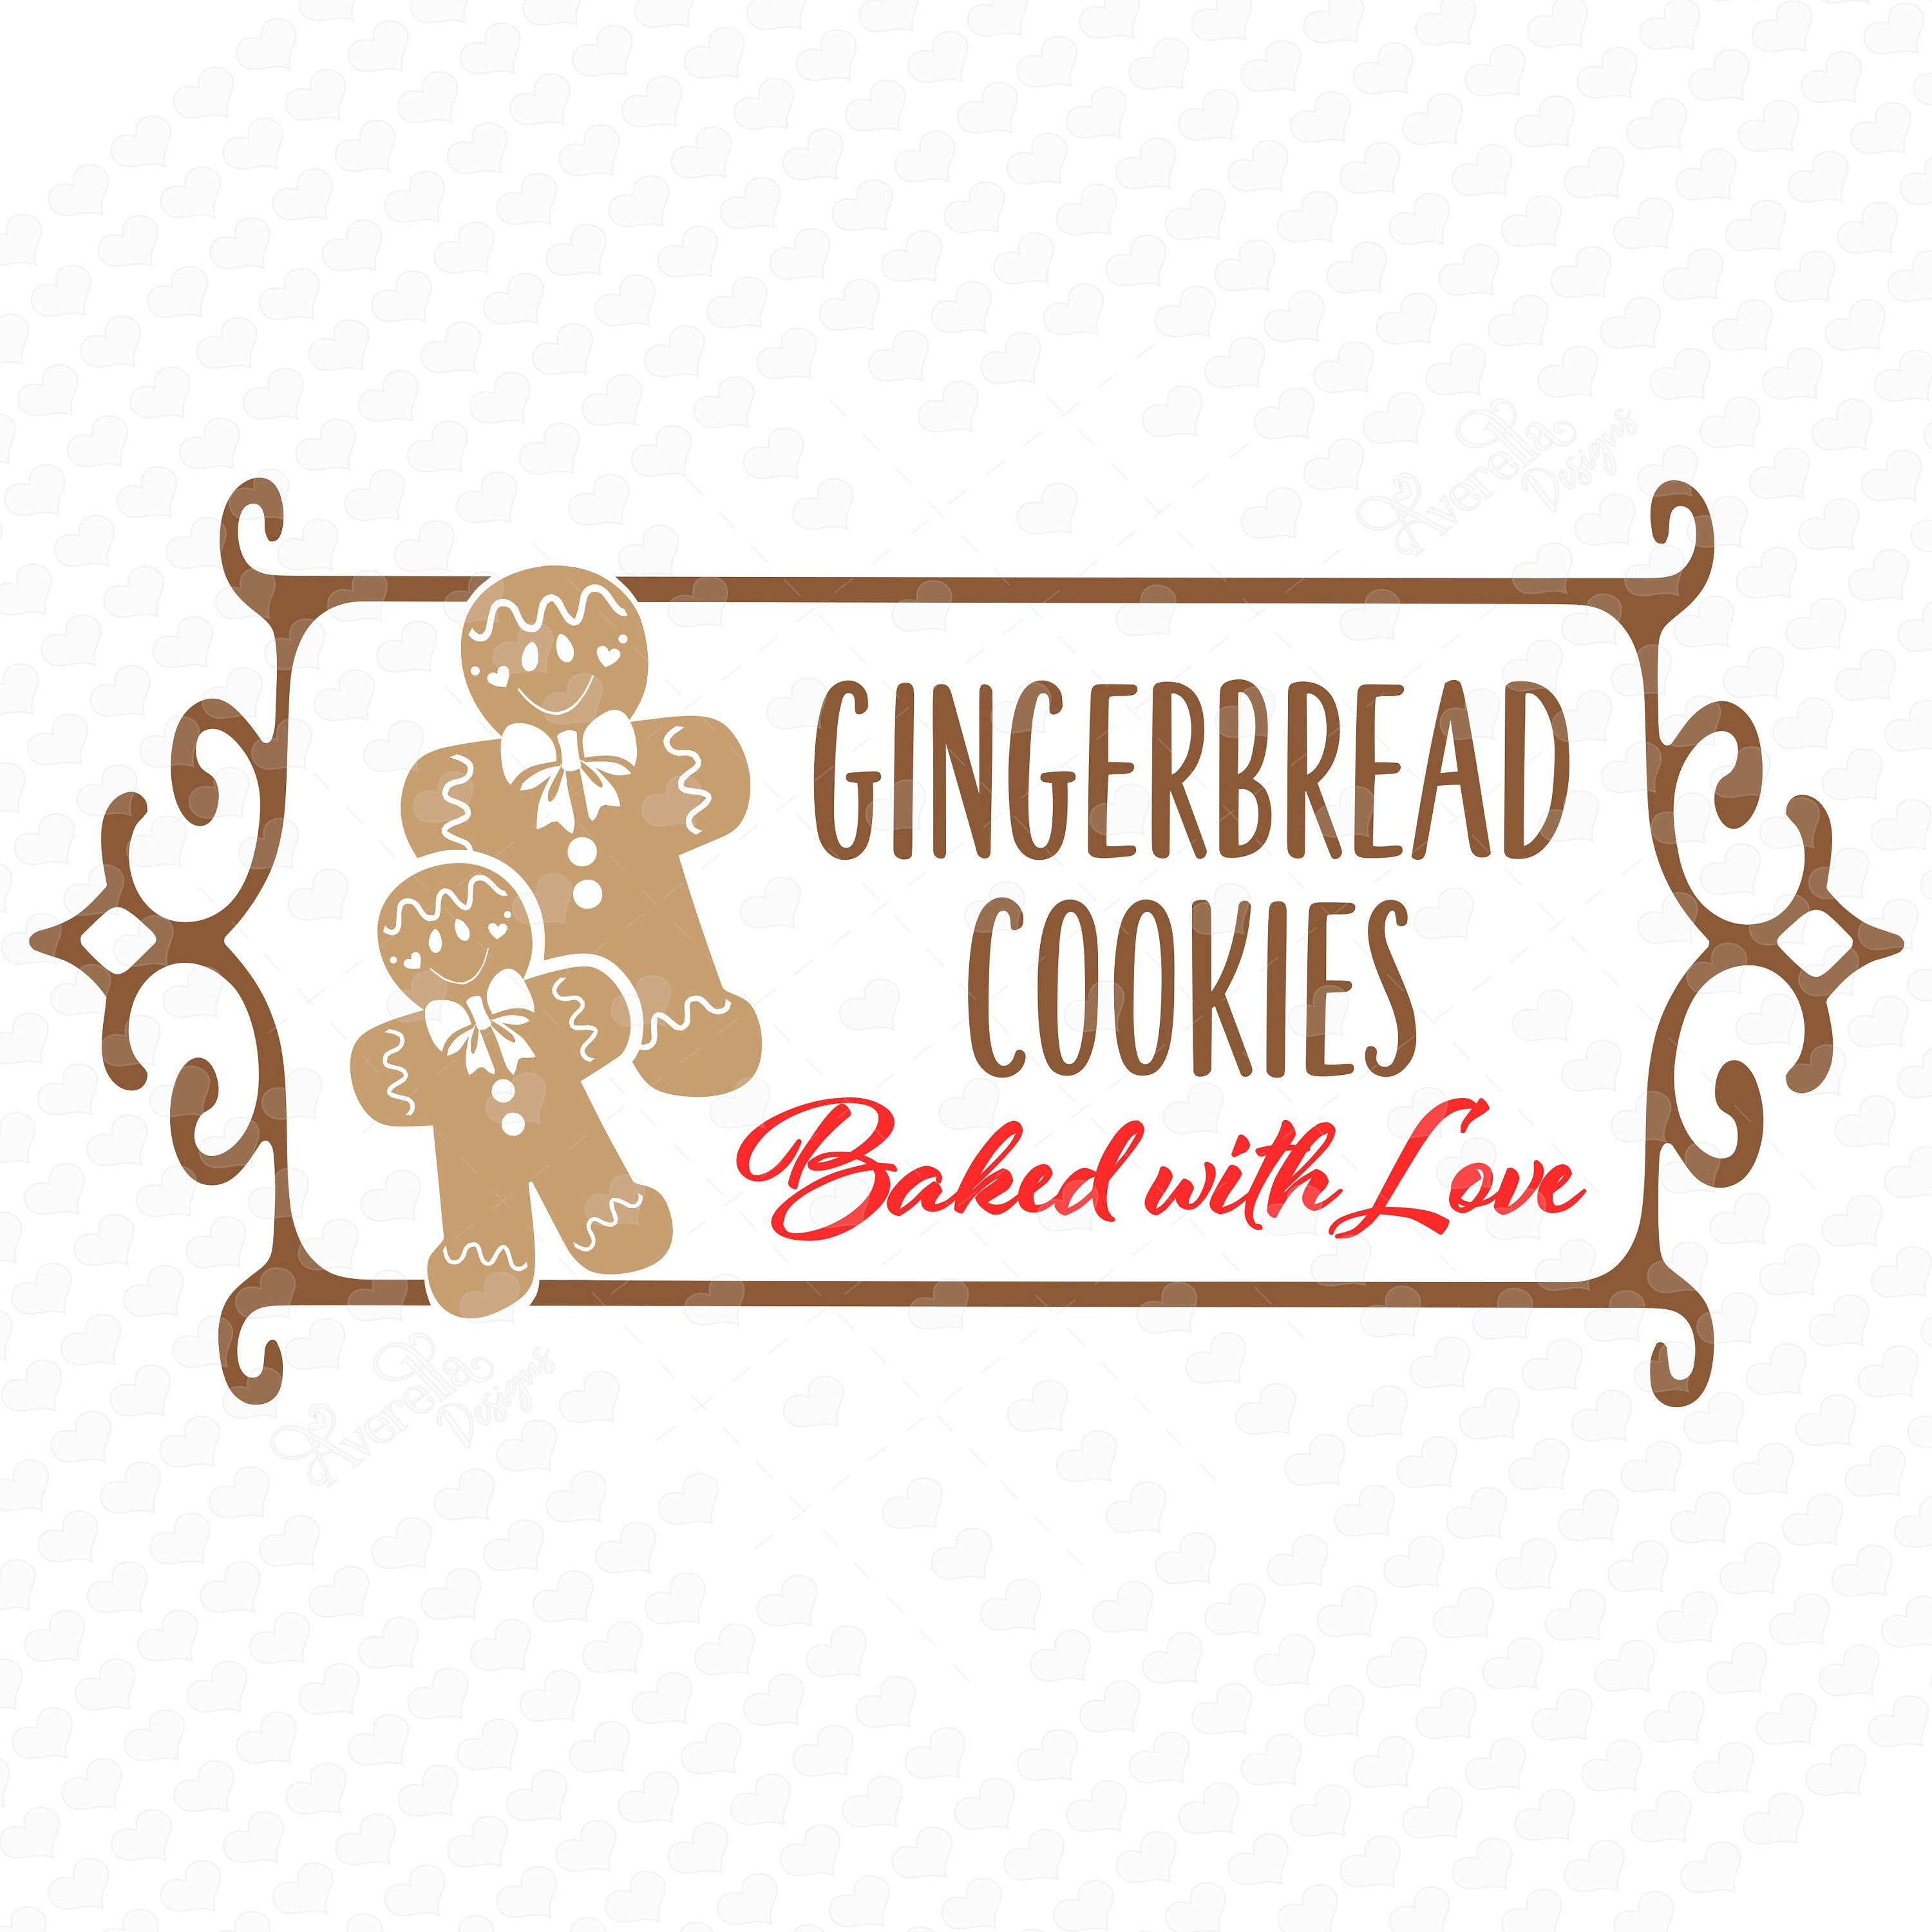 Gingerbread Cookies Baked with Love sign SVG Gingerbread